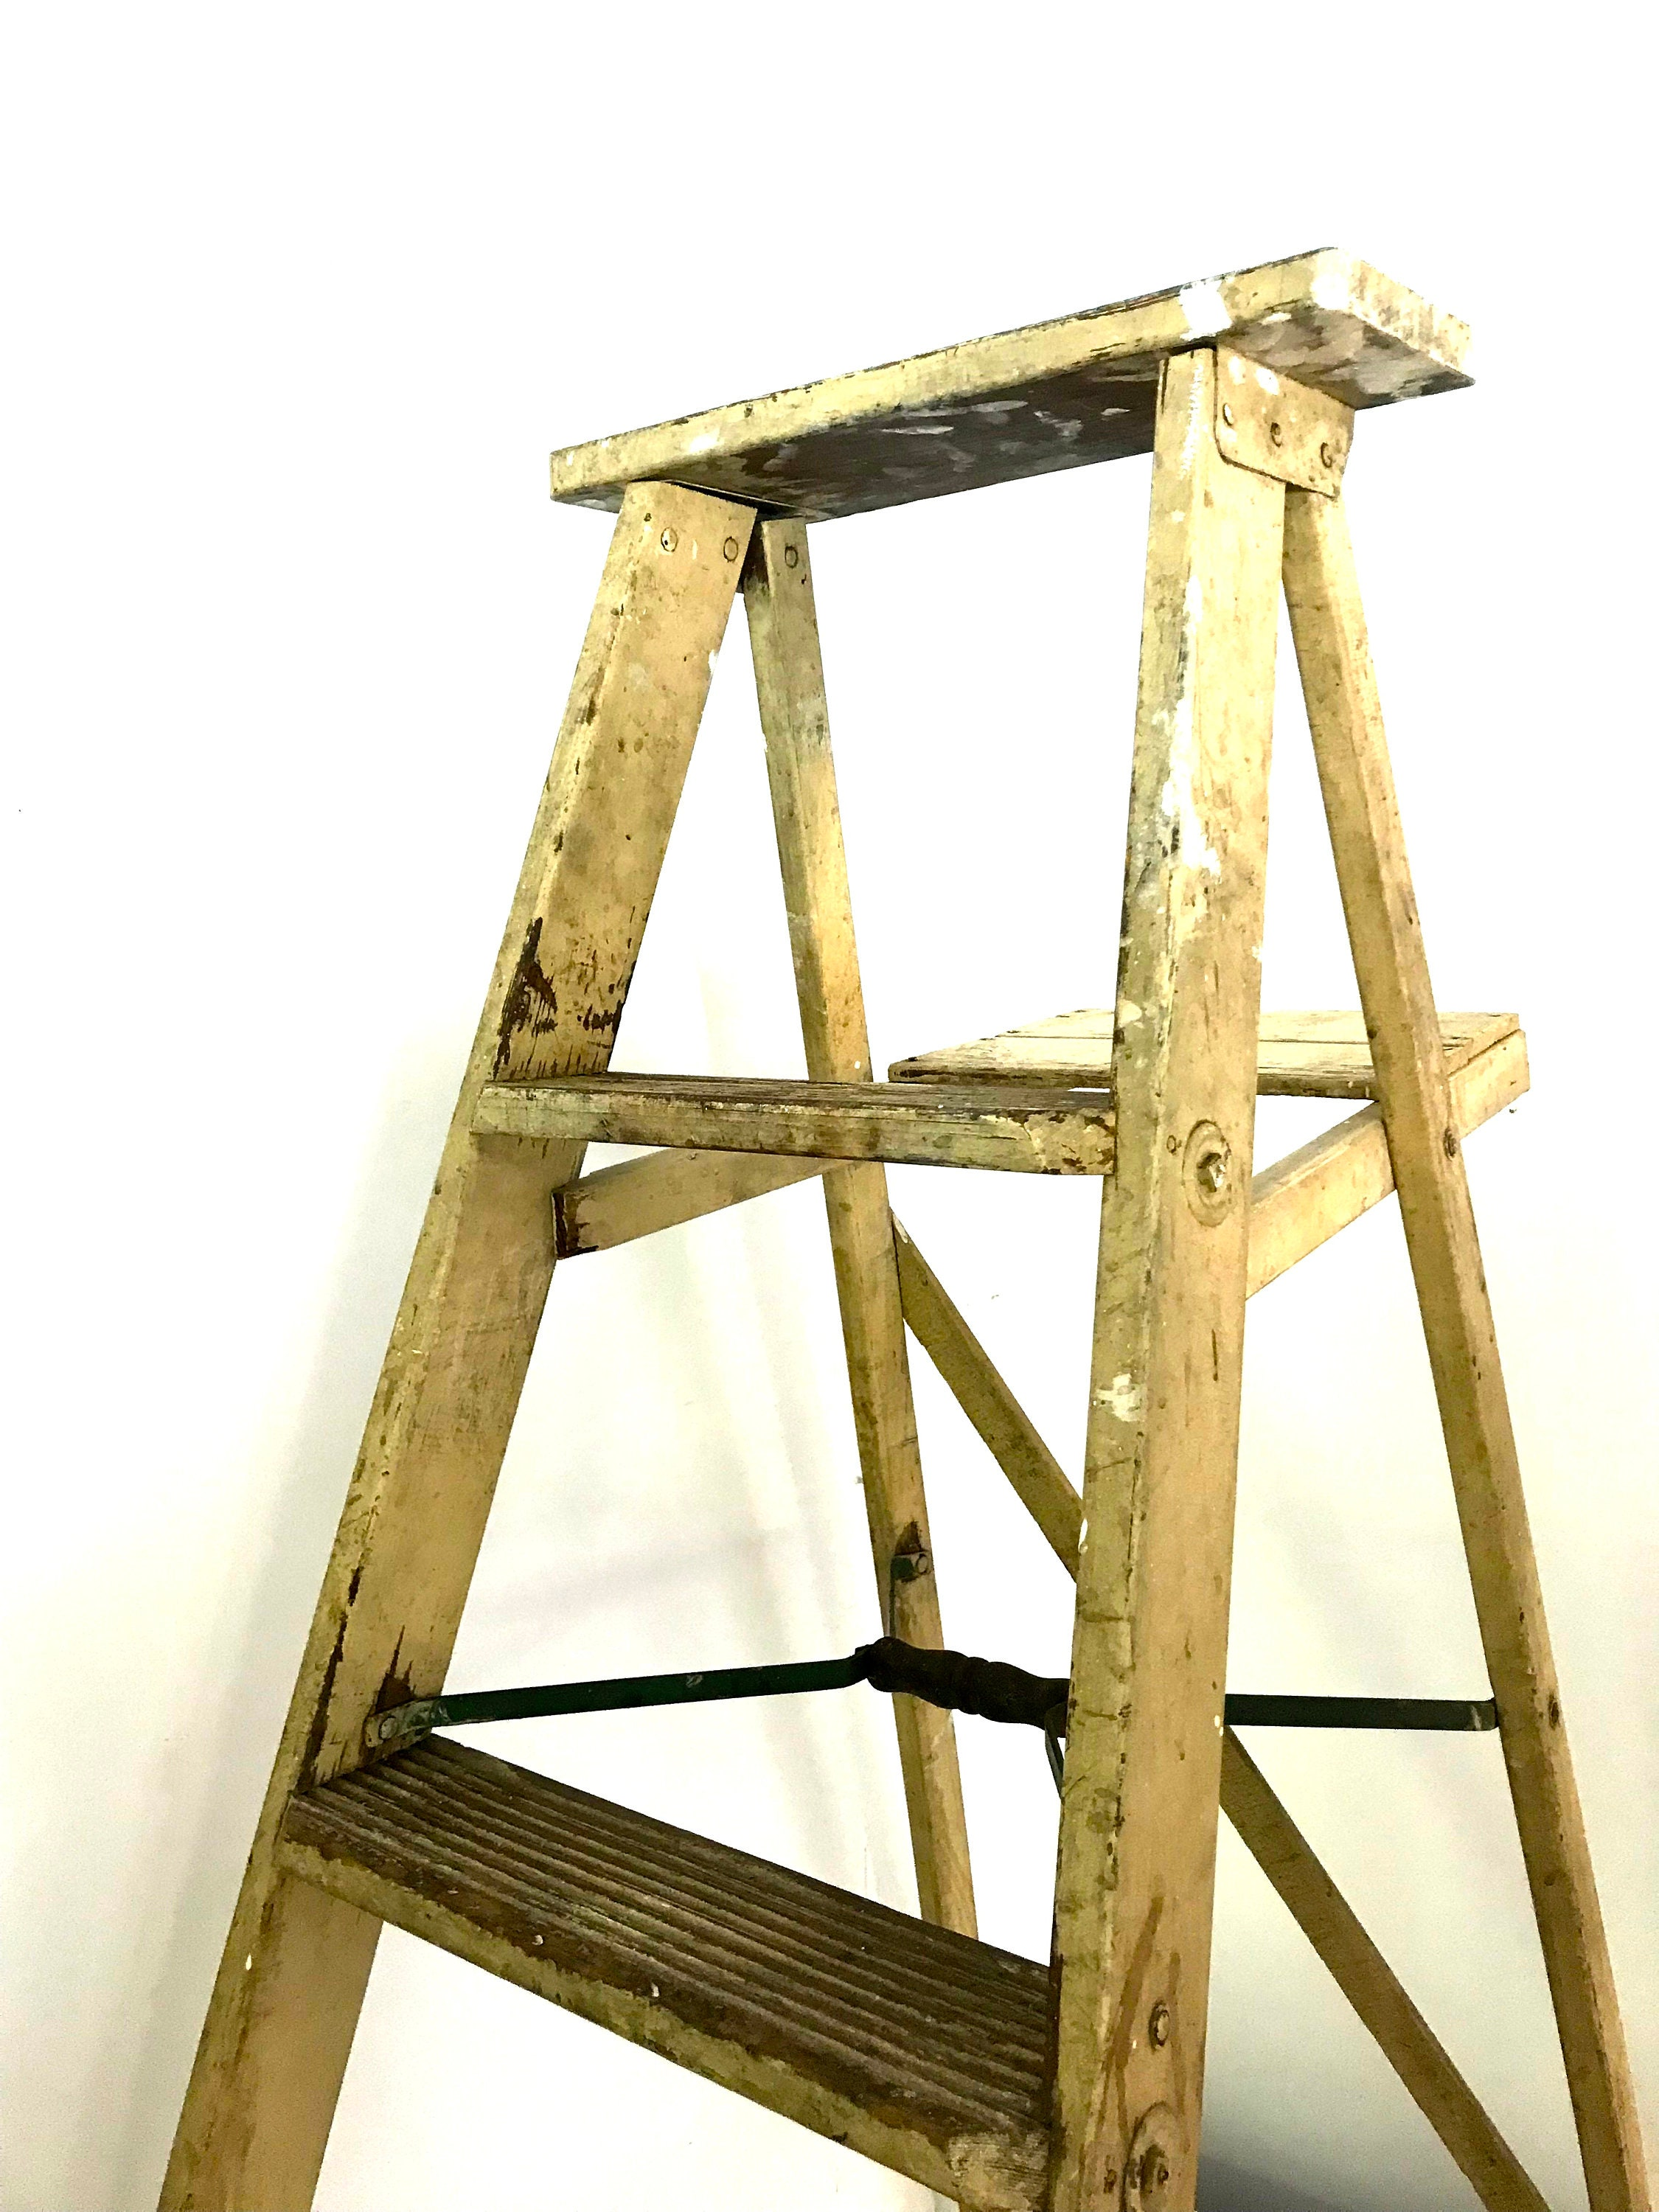 Construction Tools Construction Tool Parts Nortonberg Wood Folding Stair Chair Multi-function Step Stool Wooden Ladder Creative Ladder Chair High Quality Materials